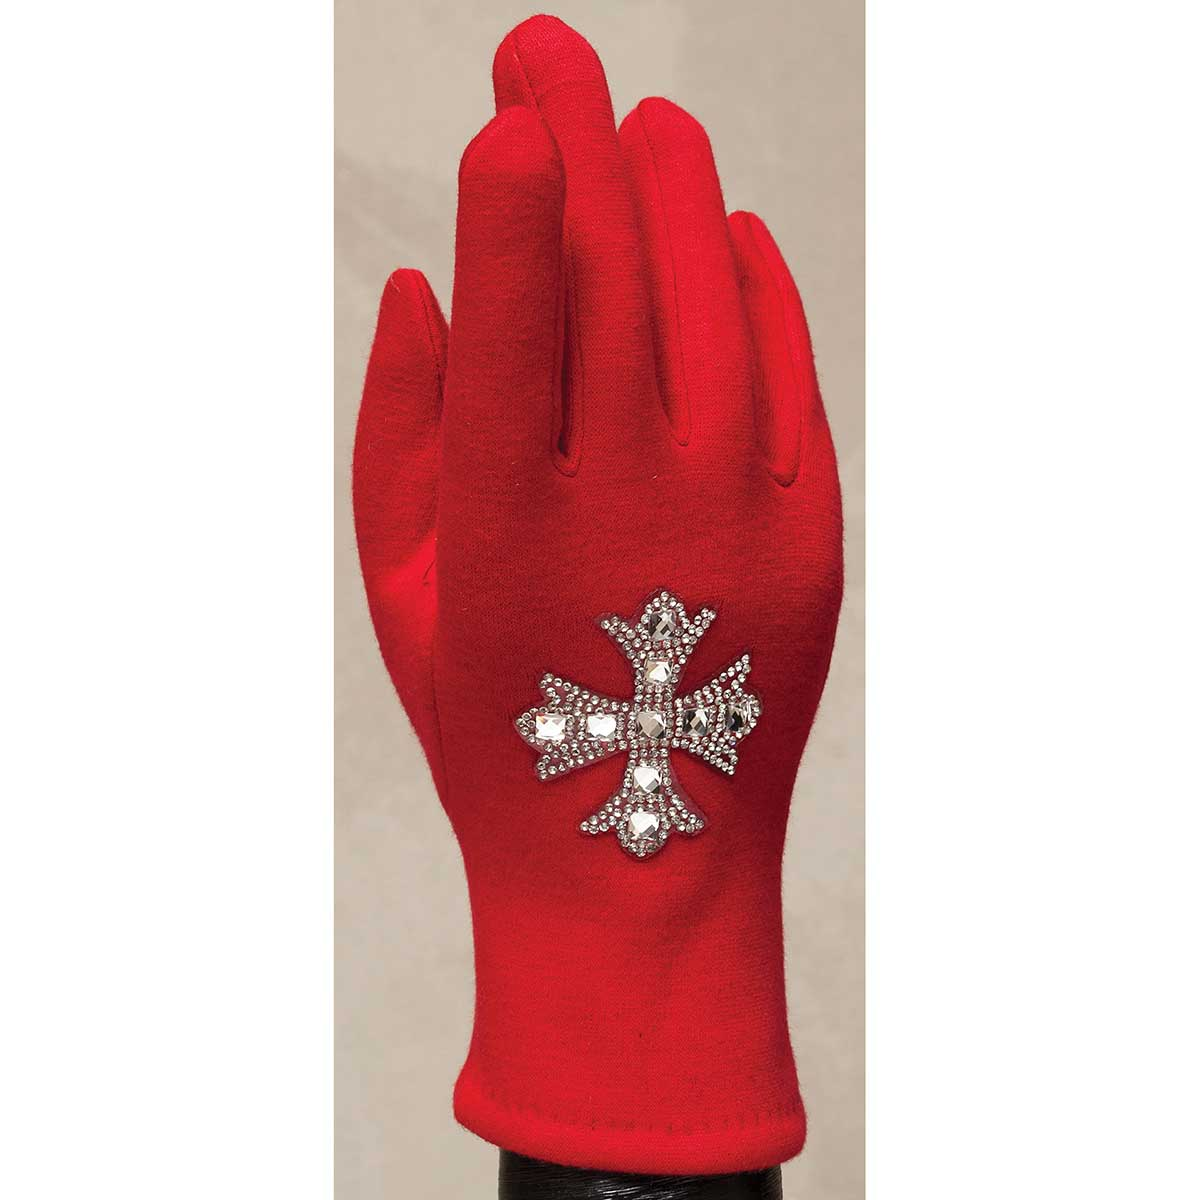 Red Gloves with Crystal Southern Cross 50sp